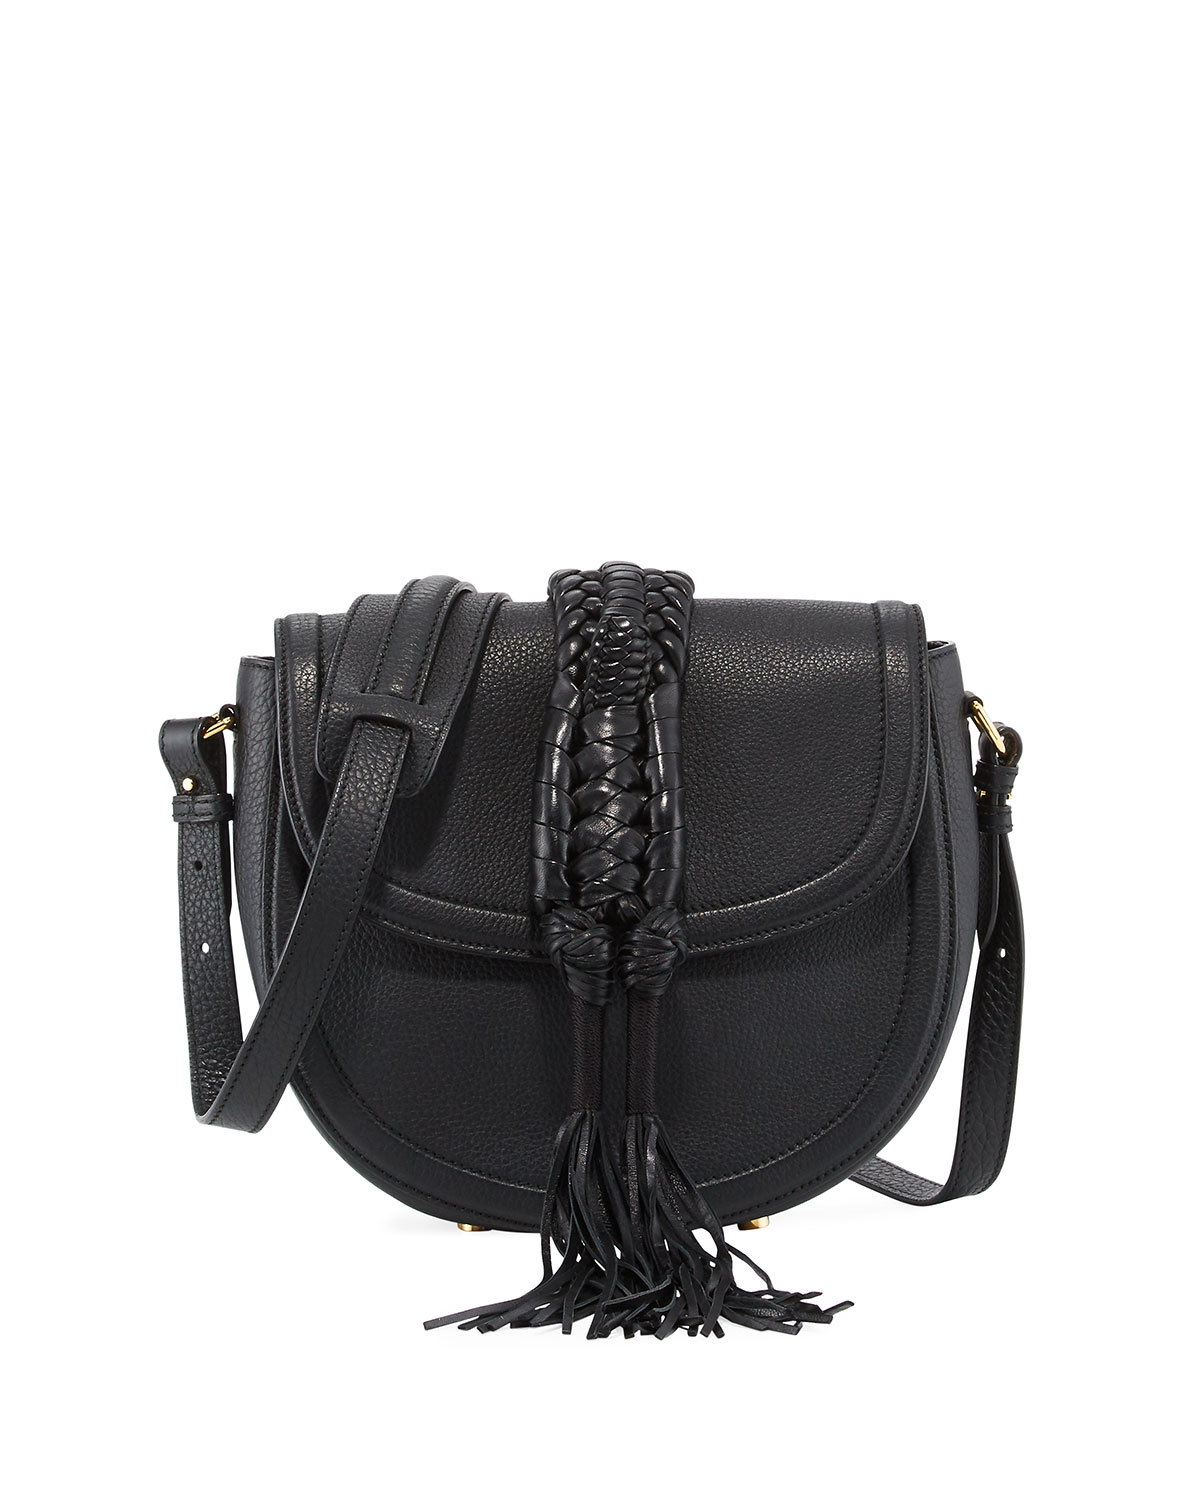 Ghianda Small Knot Saddle Bag, Black